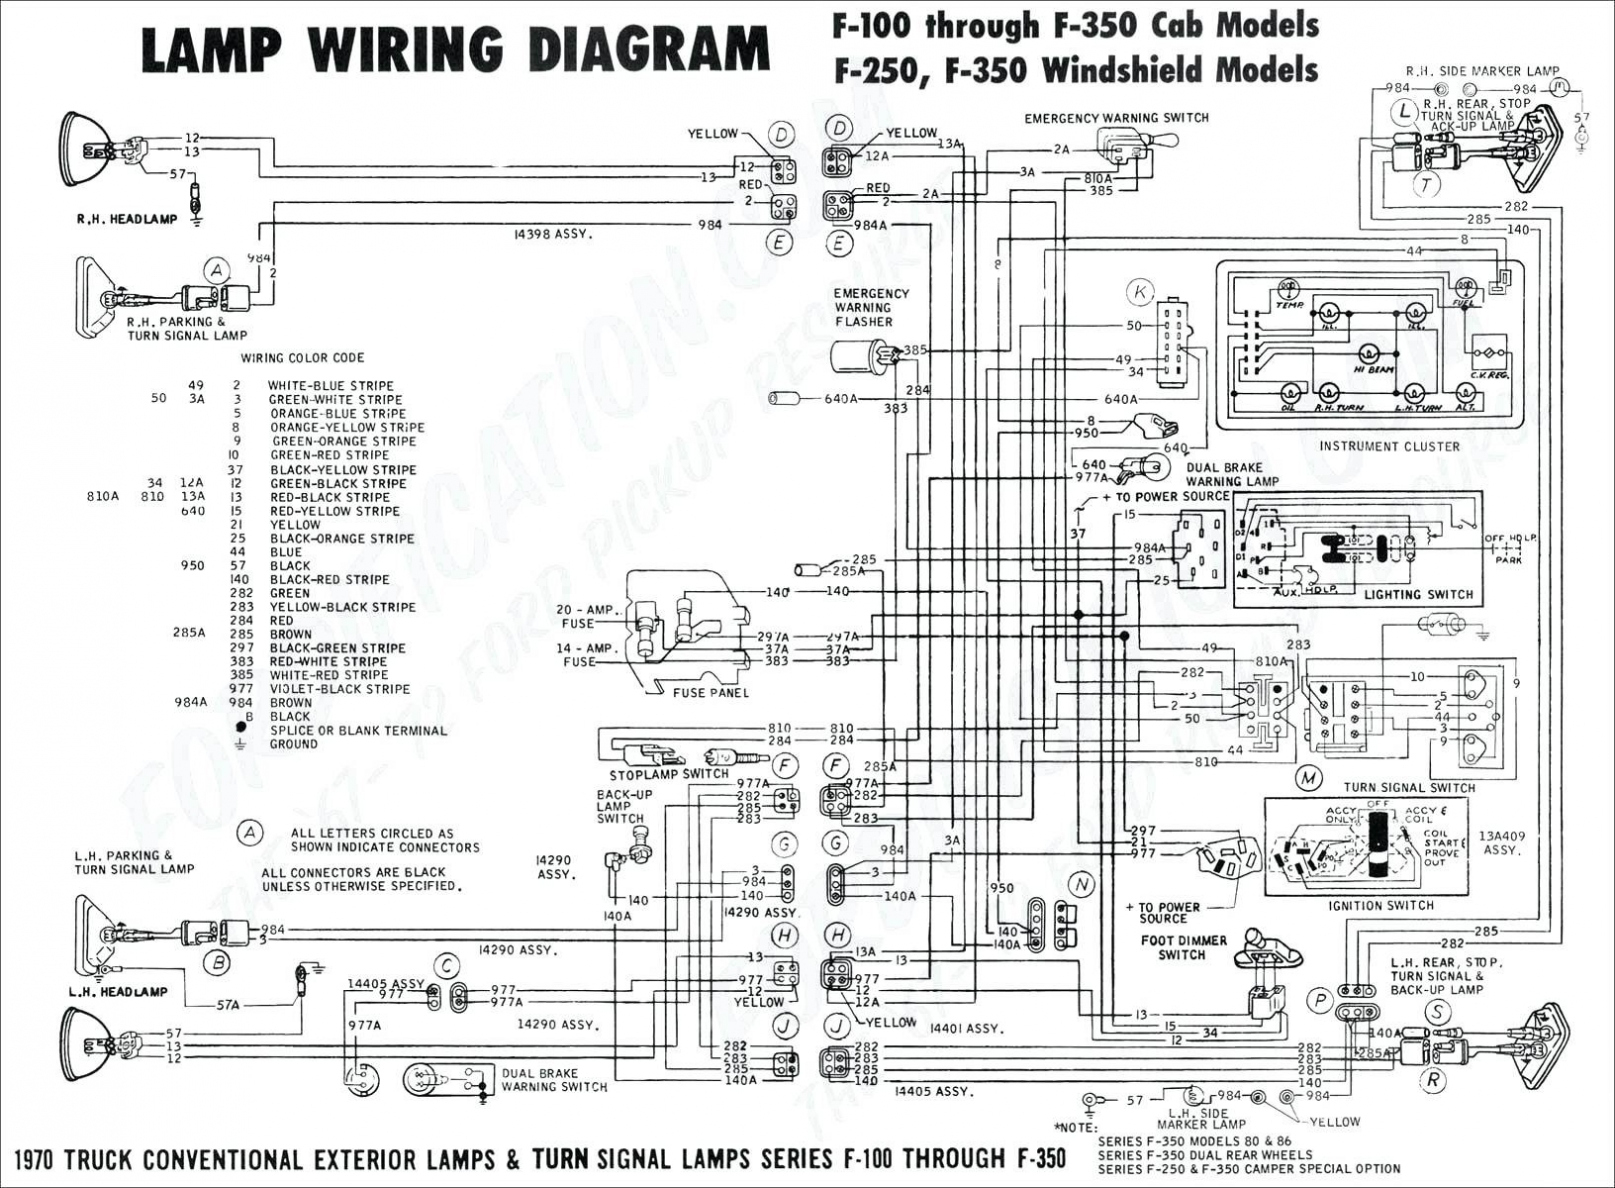 91 Dodge Western Plow Wiring Harness Diagram Free Download ... on